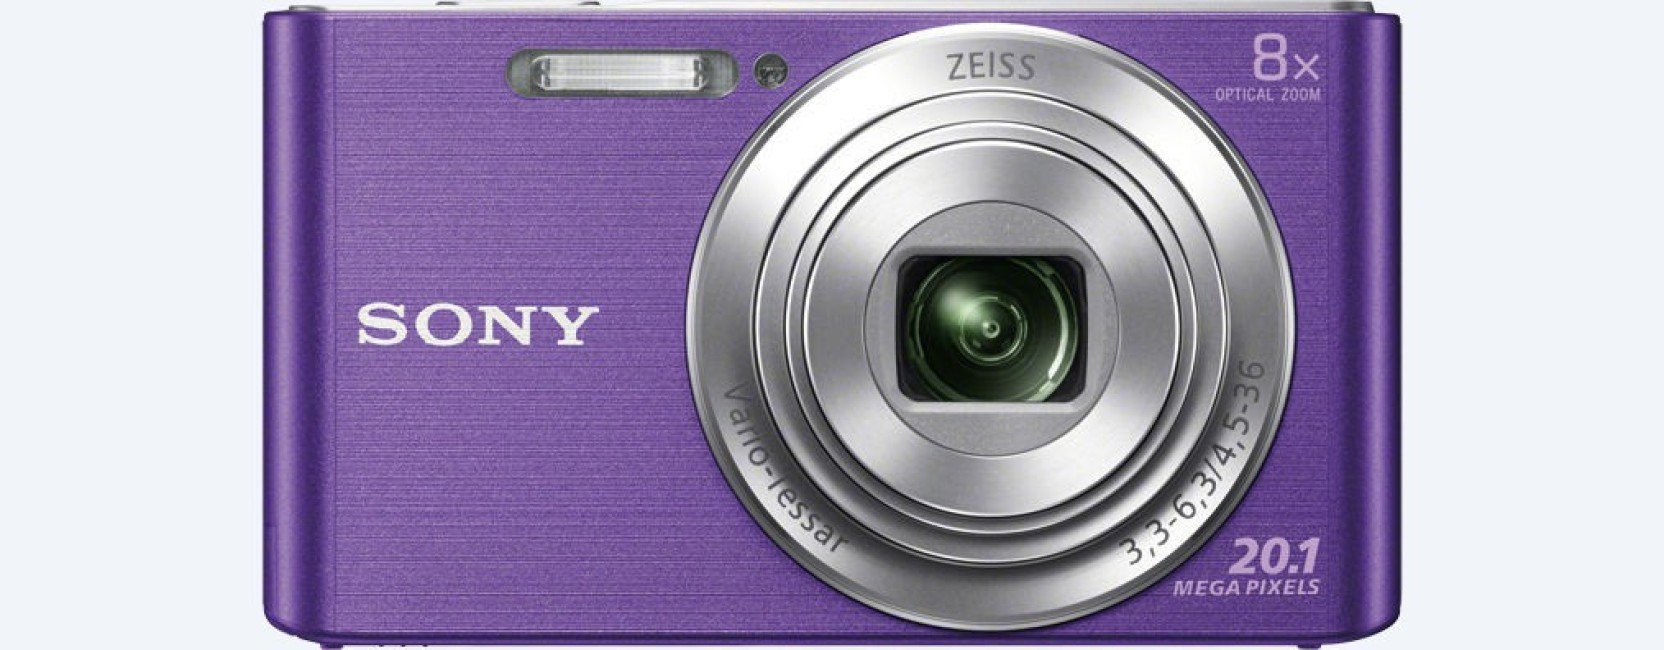 Buy Sony Dsc W830 Vc Point Shoot Camera Online At Cyber Shot W810 Add To Cart